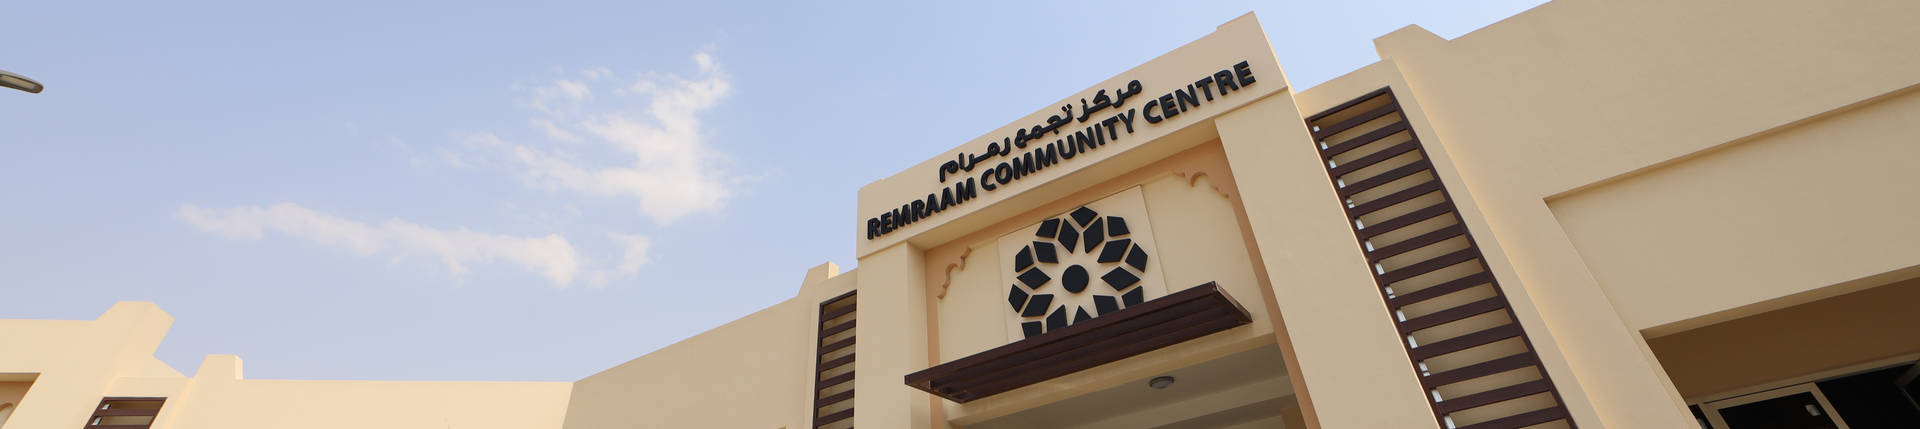 Remraam Community Center